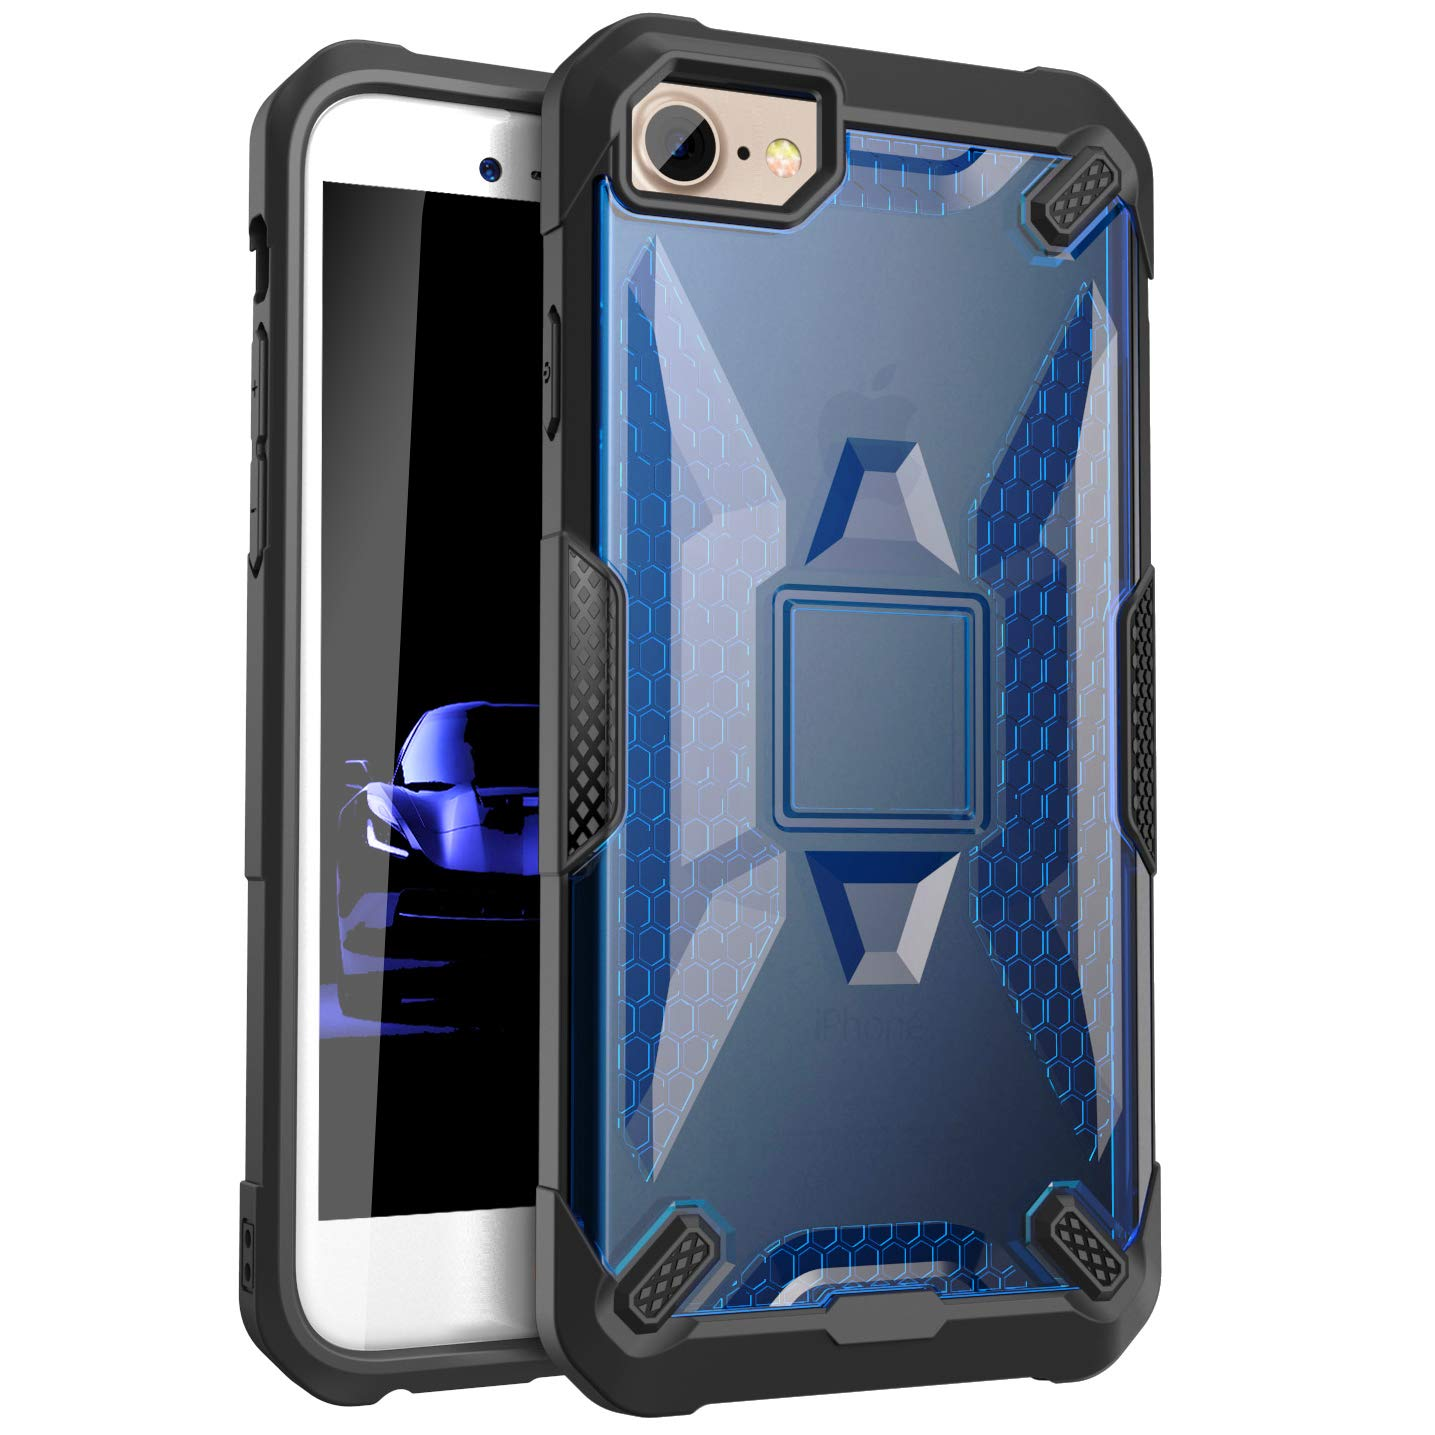 the best attitude c5ea8 17235 Zisure [ Xmatter] Vibrant Frost Clear View Durable Solid Cases with  Lightweight Design Slim fit for iPhone 6, 6s, iPhone 7, iPhone 8 (4.7 inch)  (Black ...